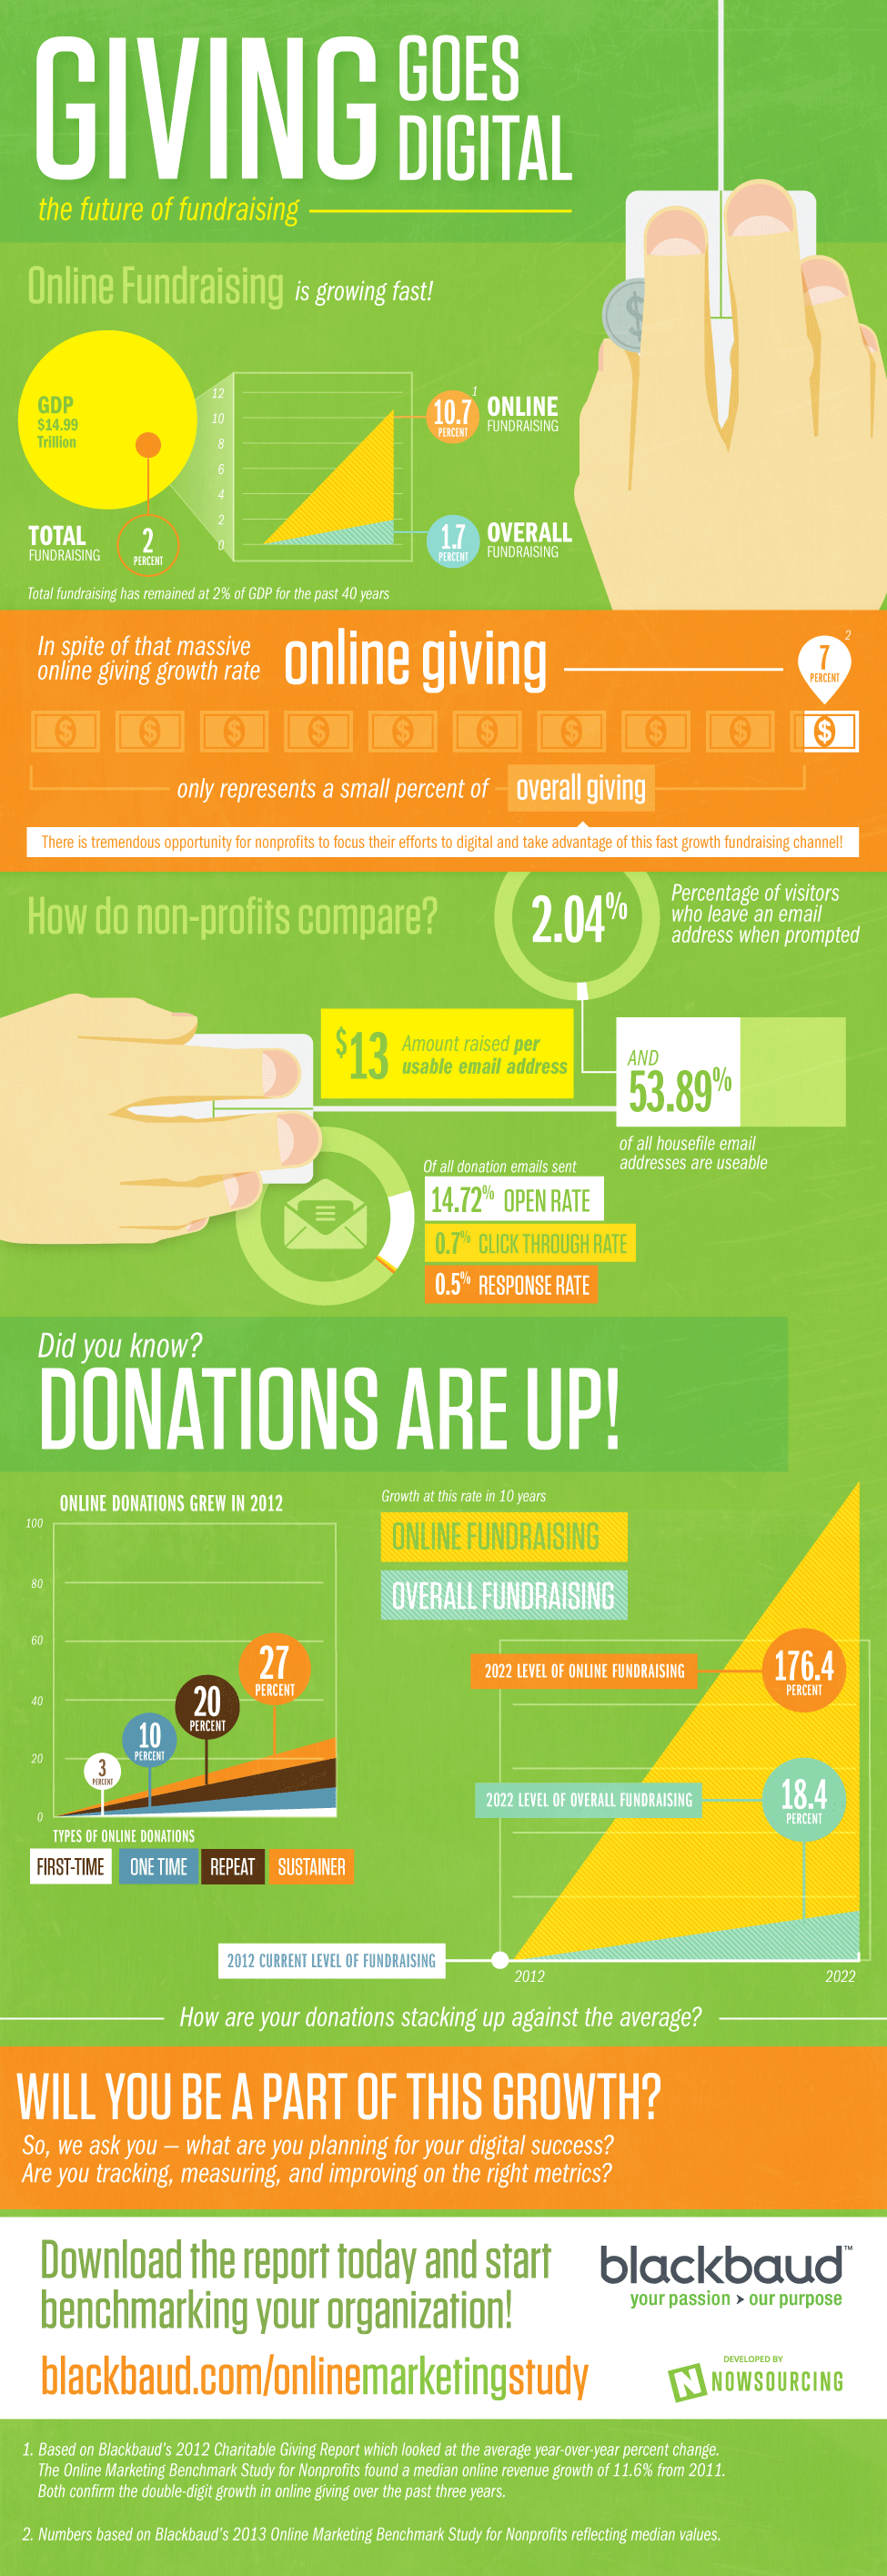 Online Giving: The Future of Fundraising [Infographic]